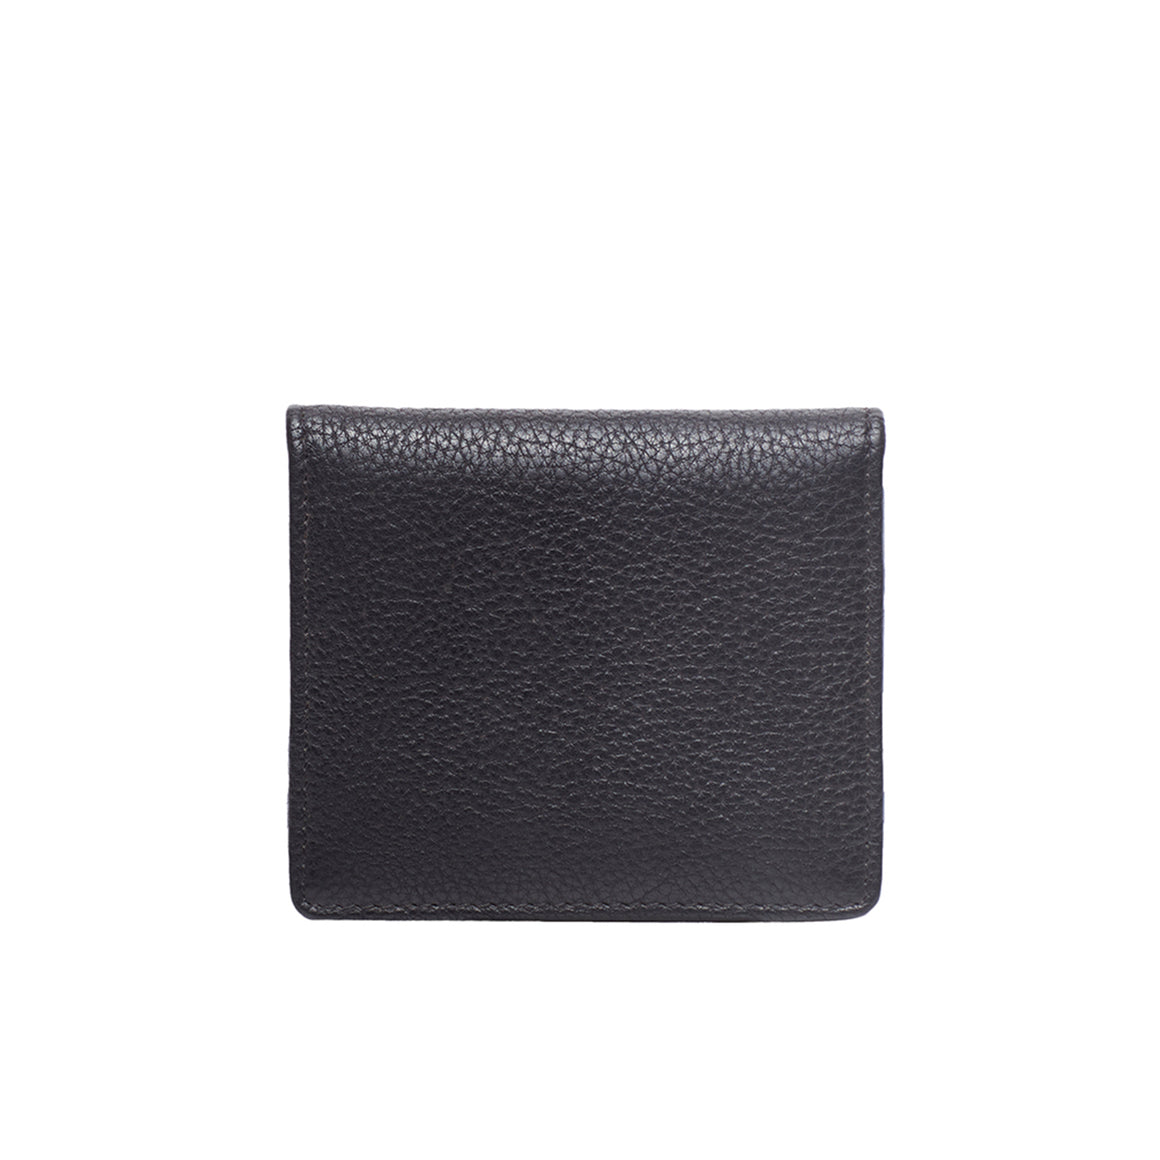 WT 0036 - TOHL RESEGA MEN'S WALLET - CHARCOAL BLACK